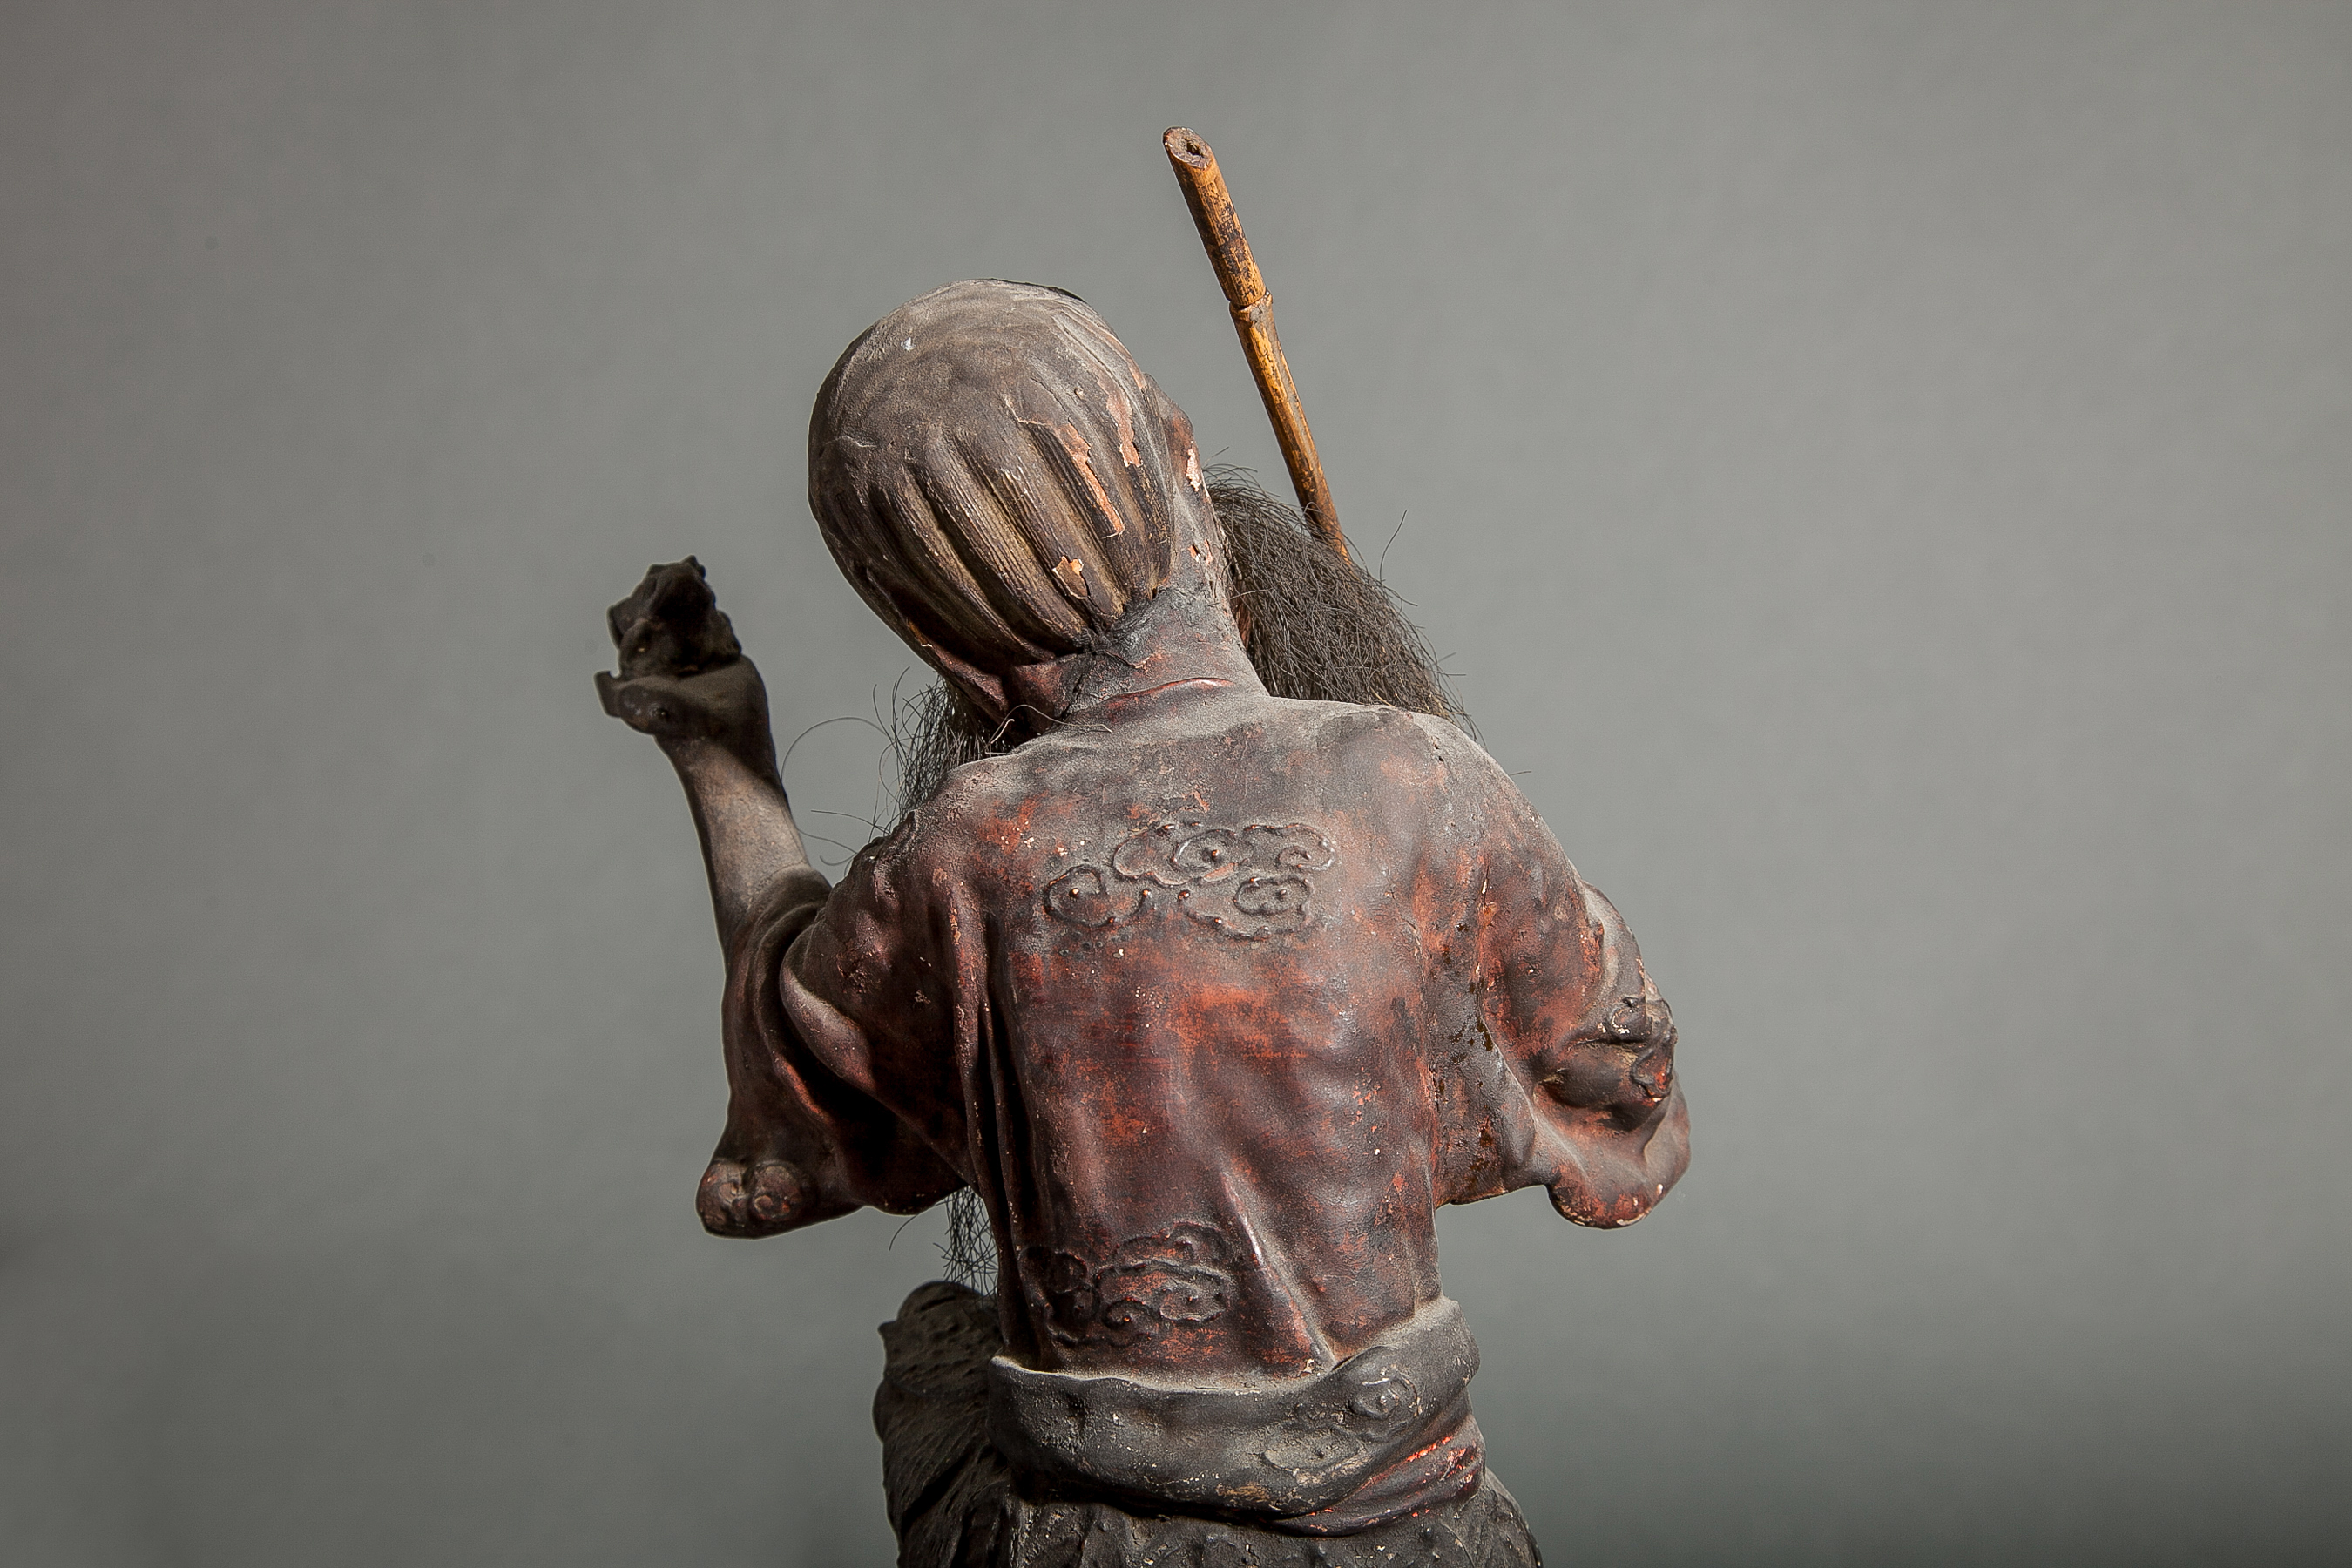 Gama Sennin, the Sage with a Toad